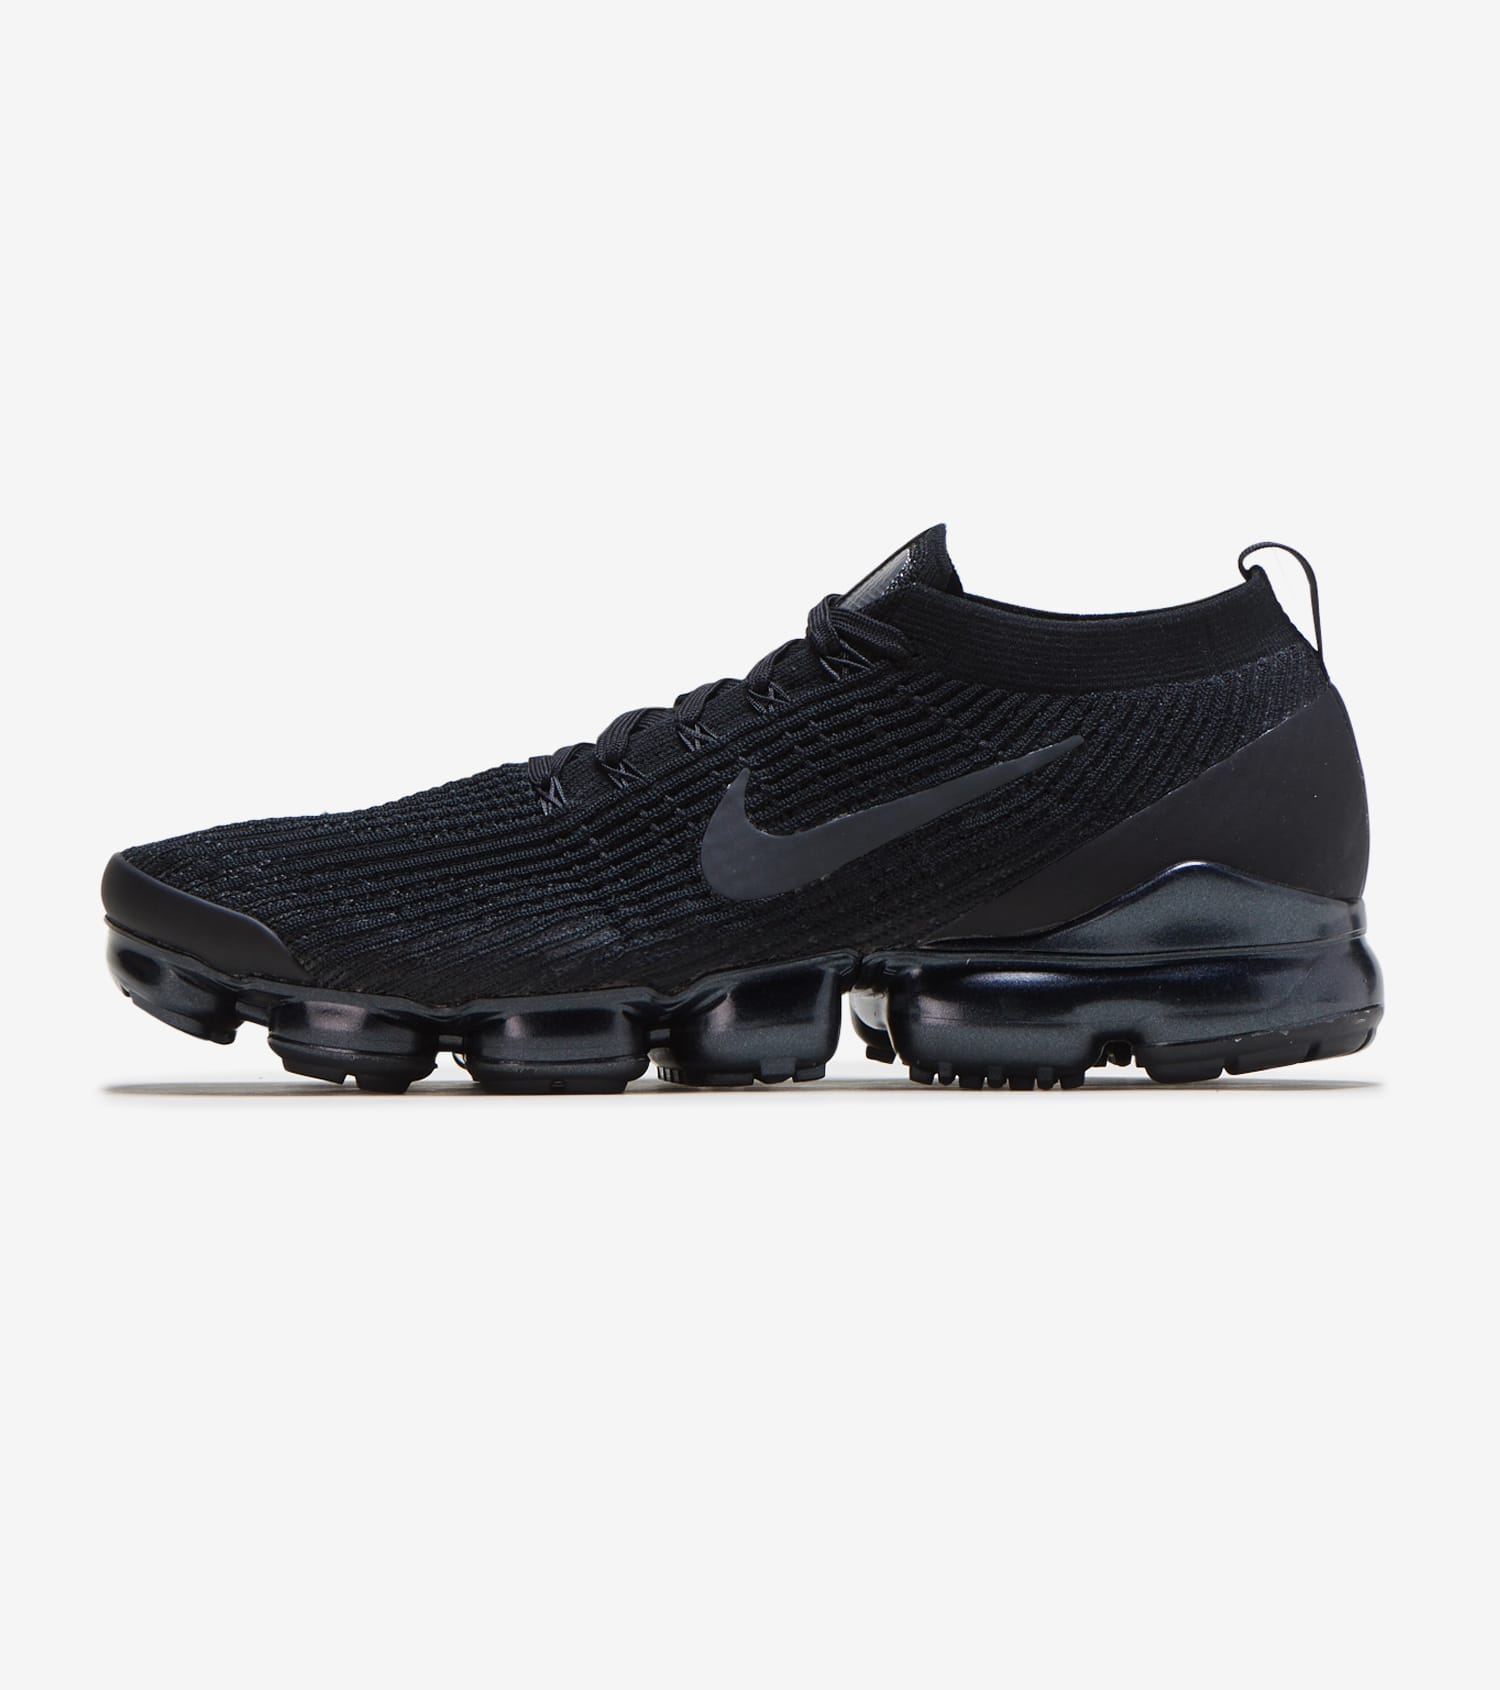 outlet store a254f 1b487 Air Vapormax Flyknit 3